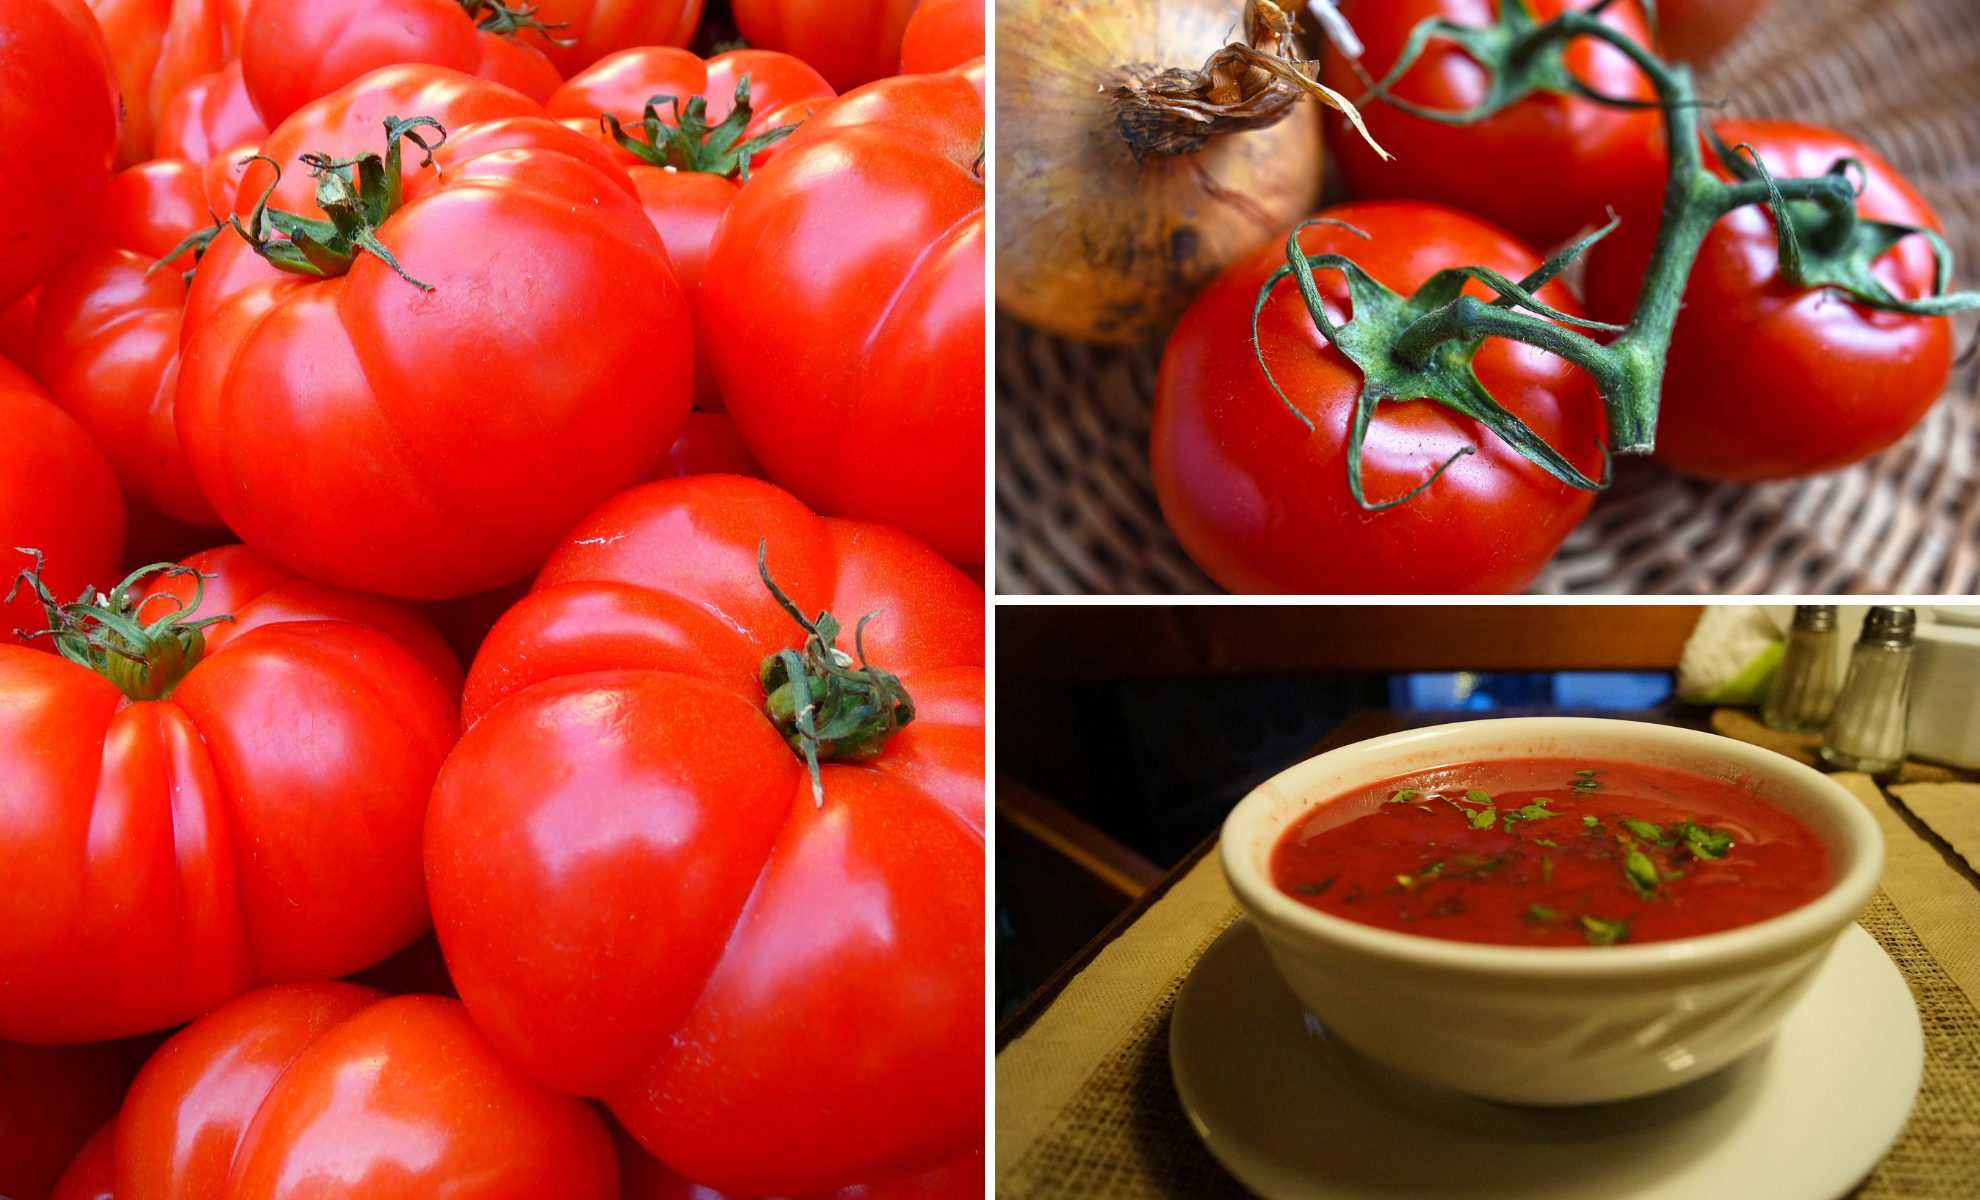 Winter is coming. Time to Make Homemade Tomato Soup